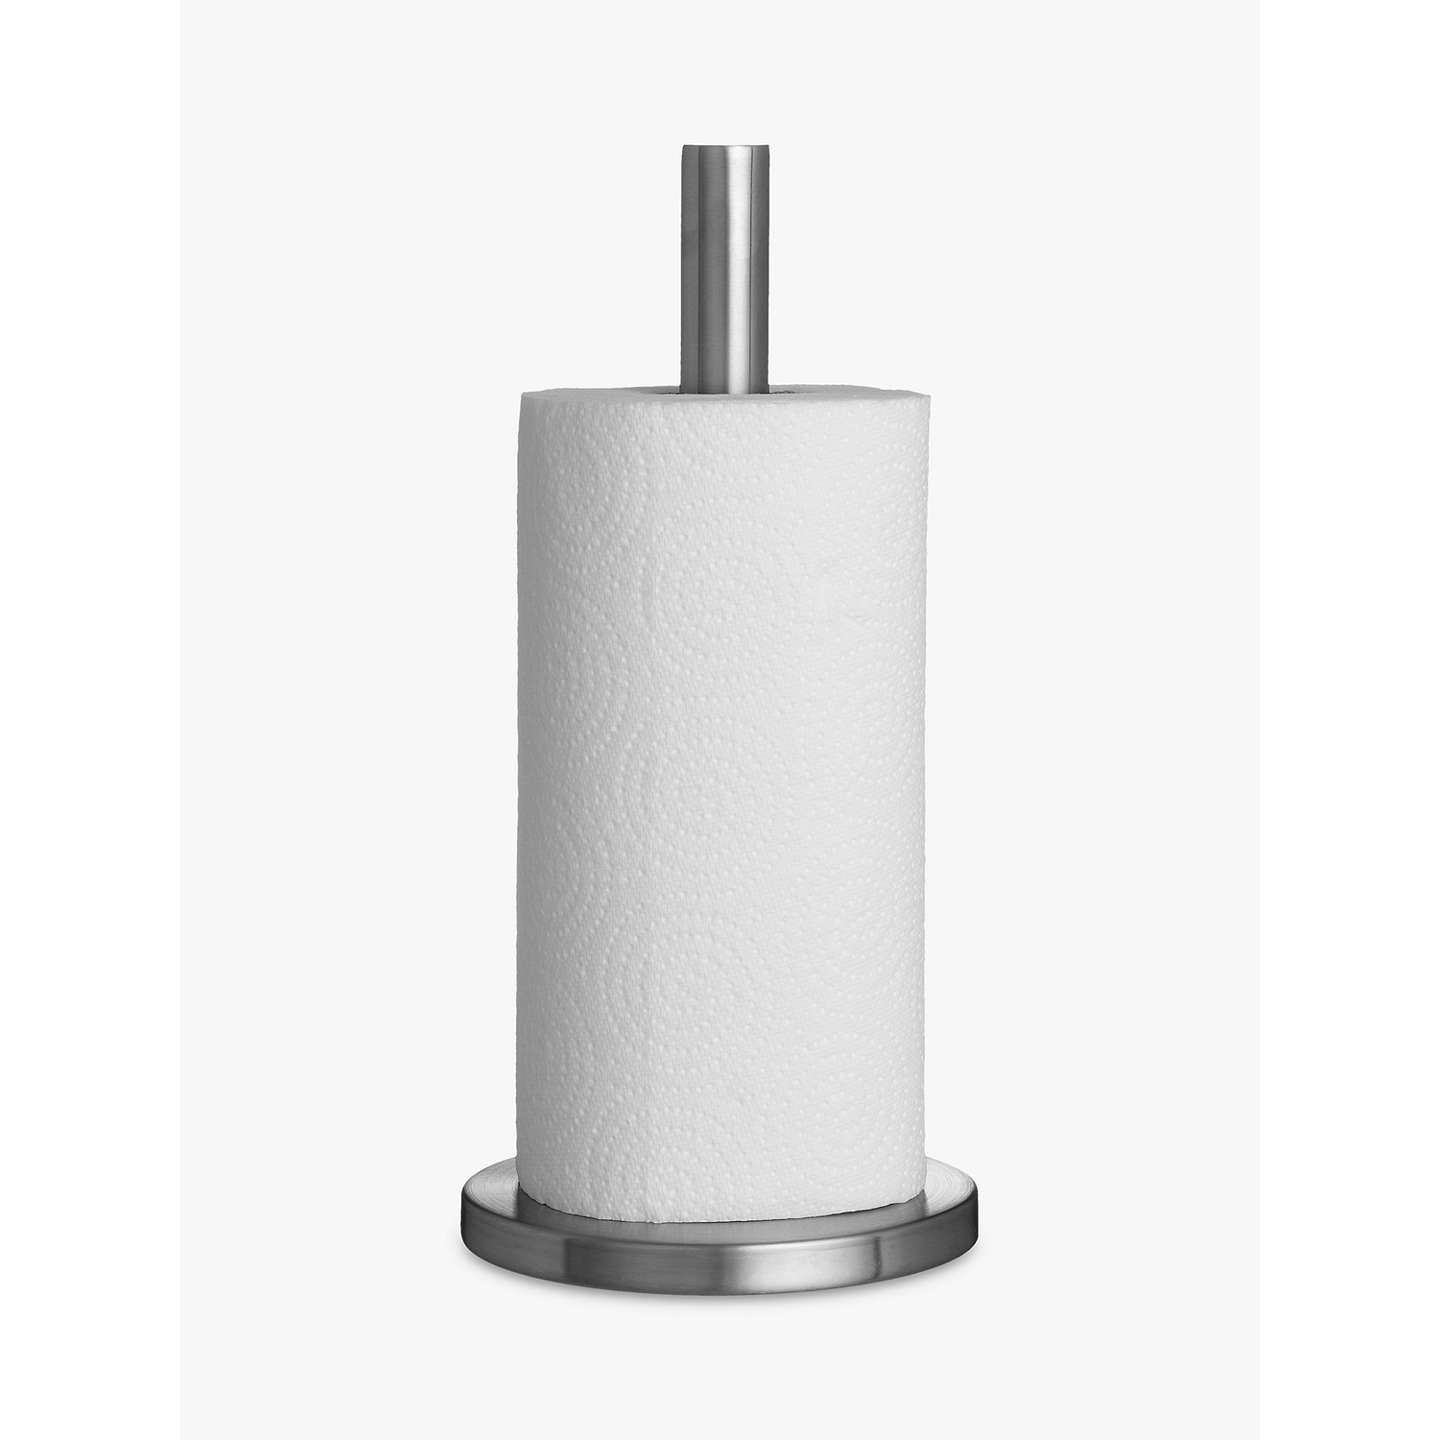 John Lewis Kitchen Roll Holder, Stainless Steel At John Lewis